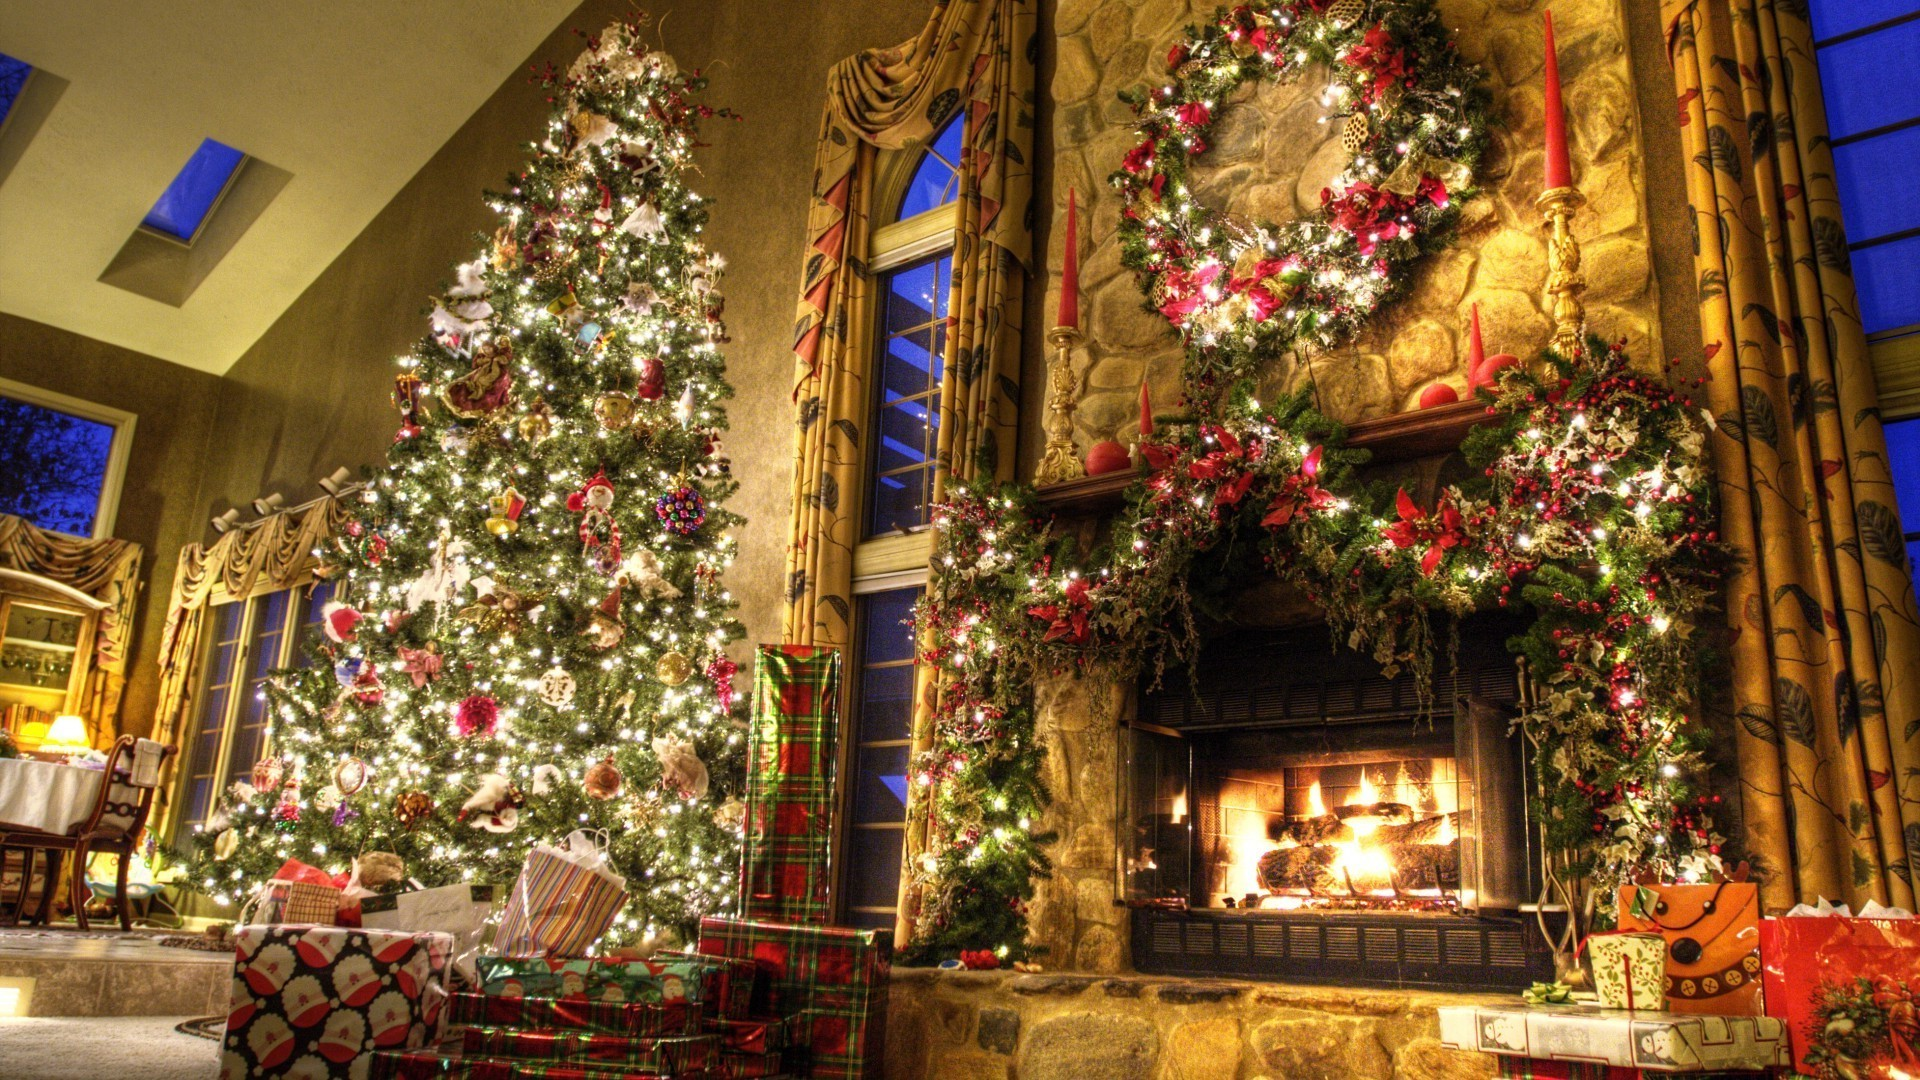 new year christmas christmas tree decoration architecture celebration interior design travel